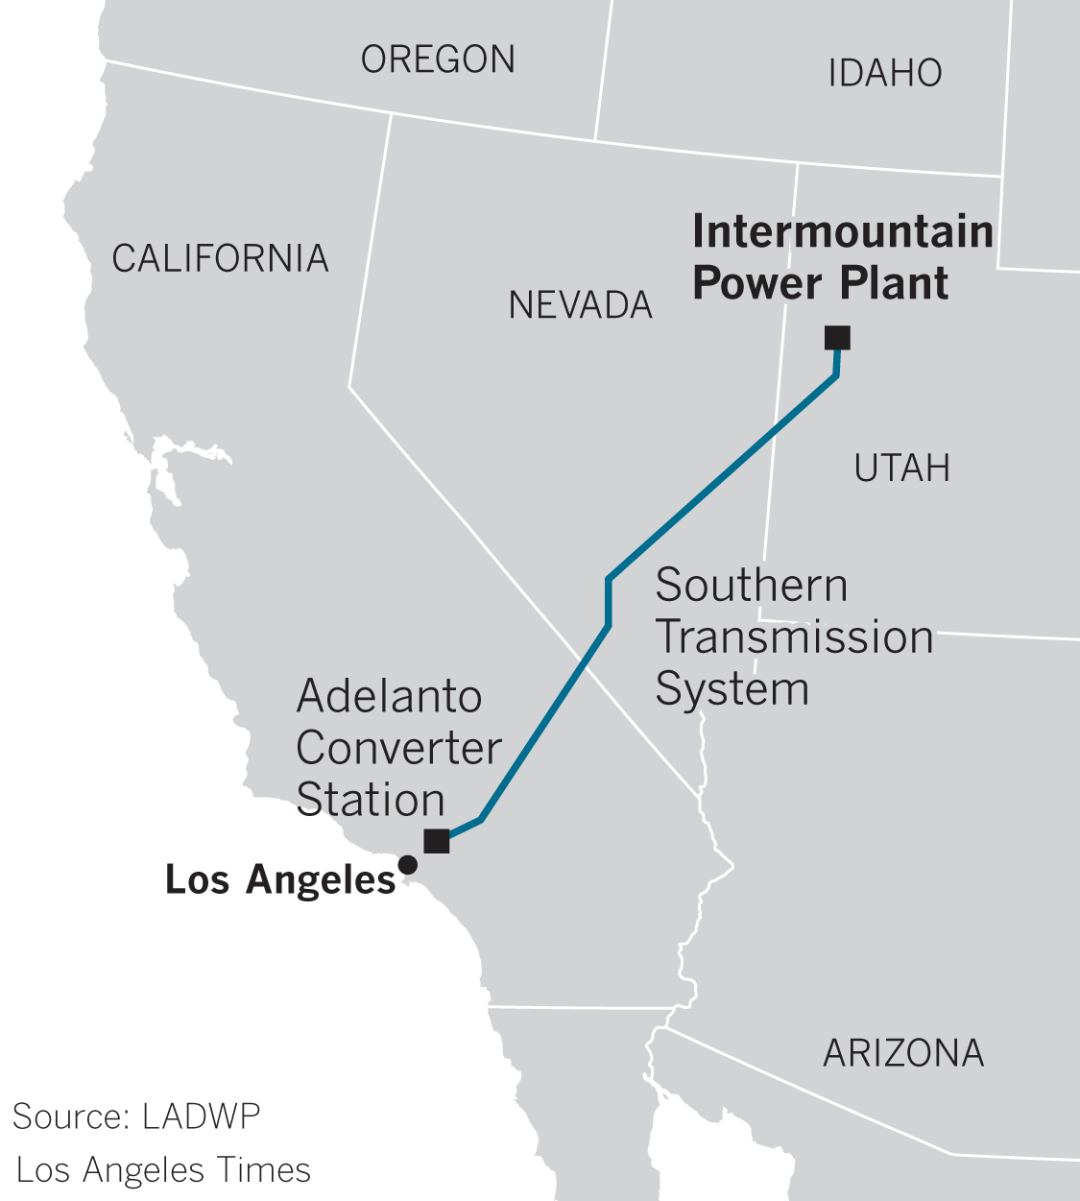 Intermountain Power Plant map